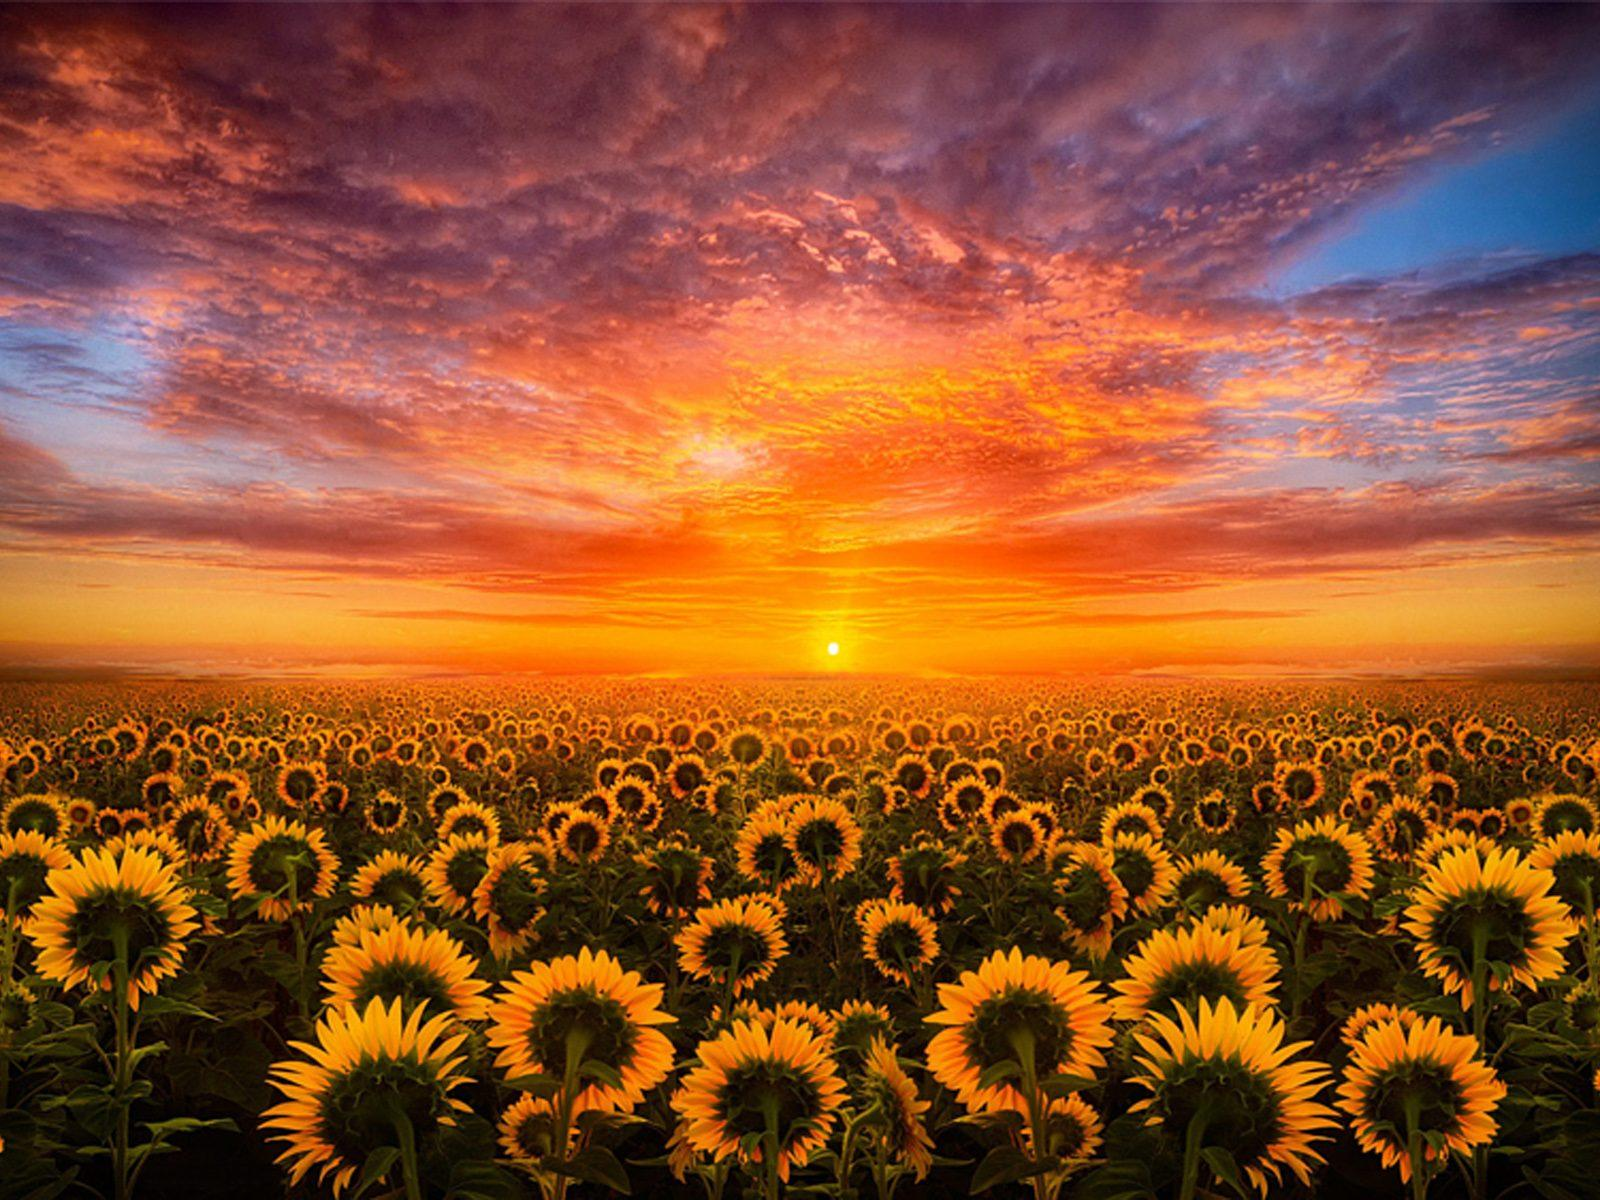 Sunflowers At Sunset Wallpapers - Wallpaper Cave